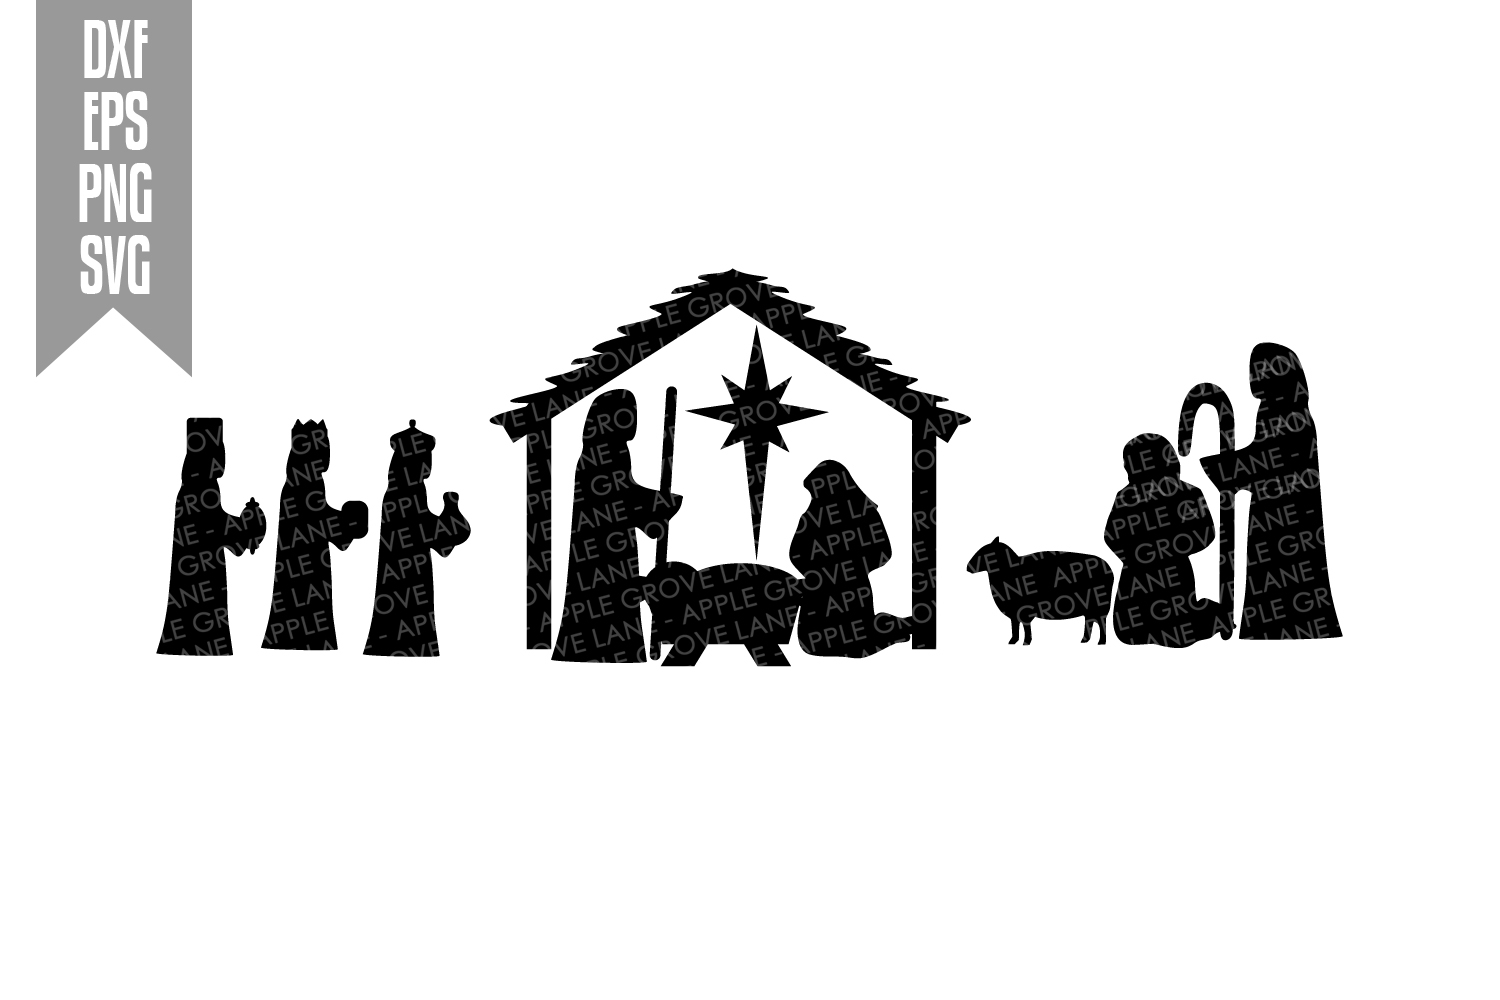 Christmas Nativity Svg Cut File - Svg Dxf Eps Png example image 2